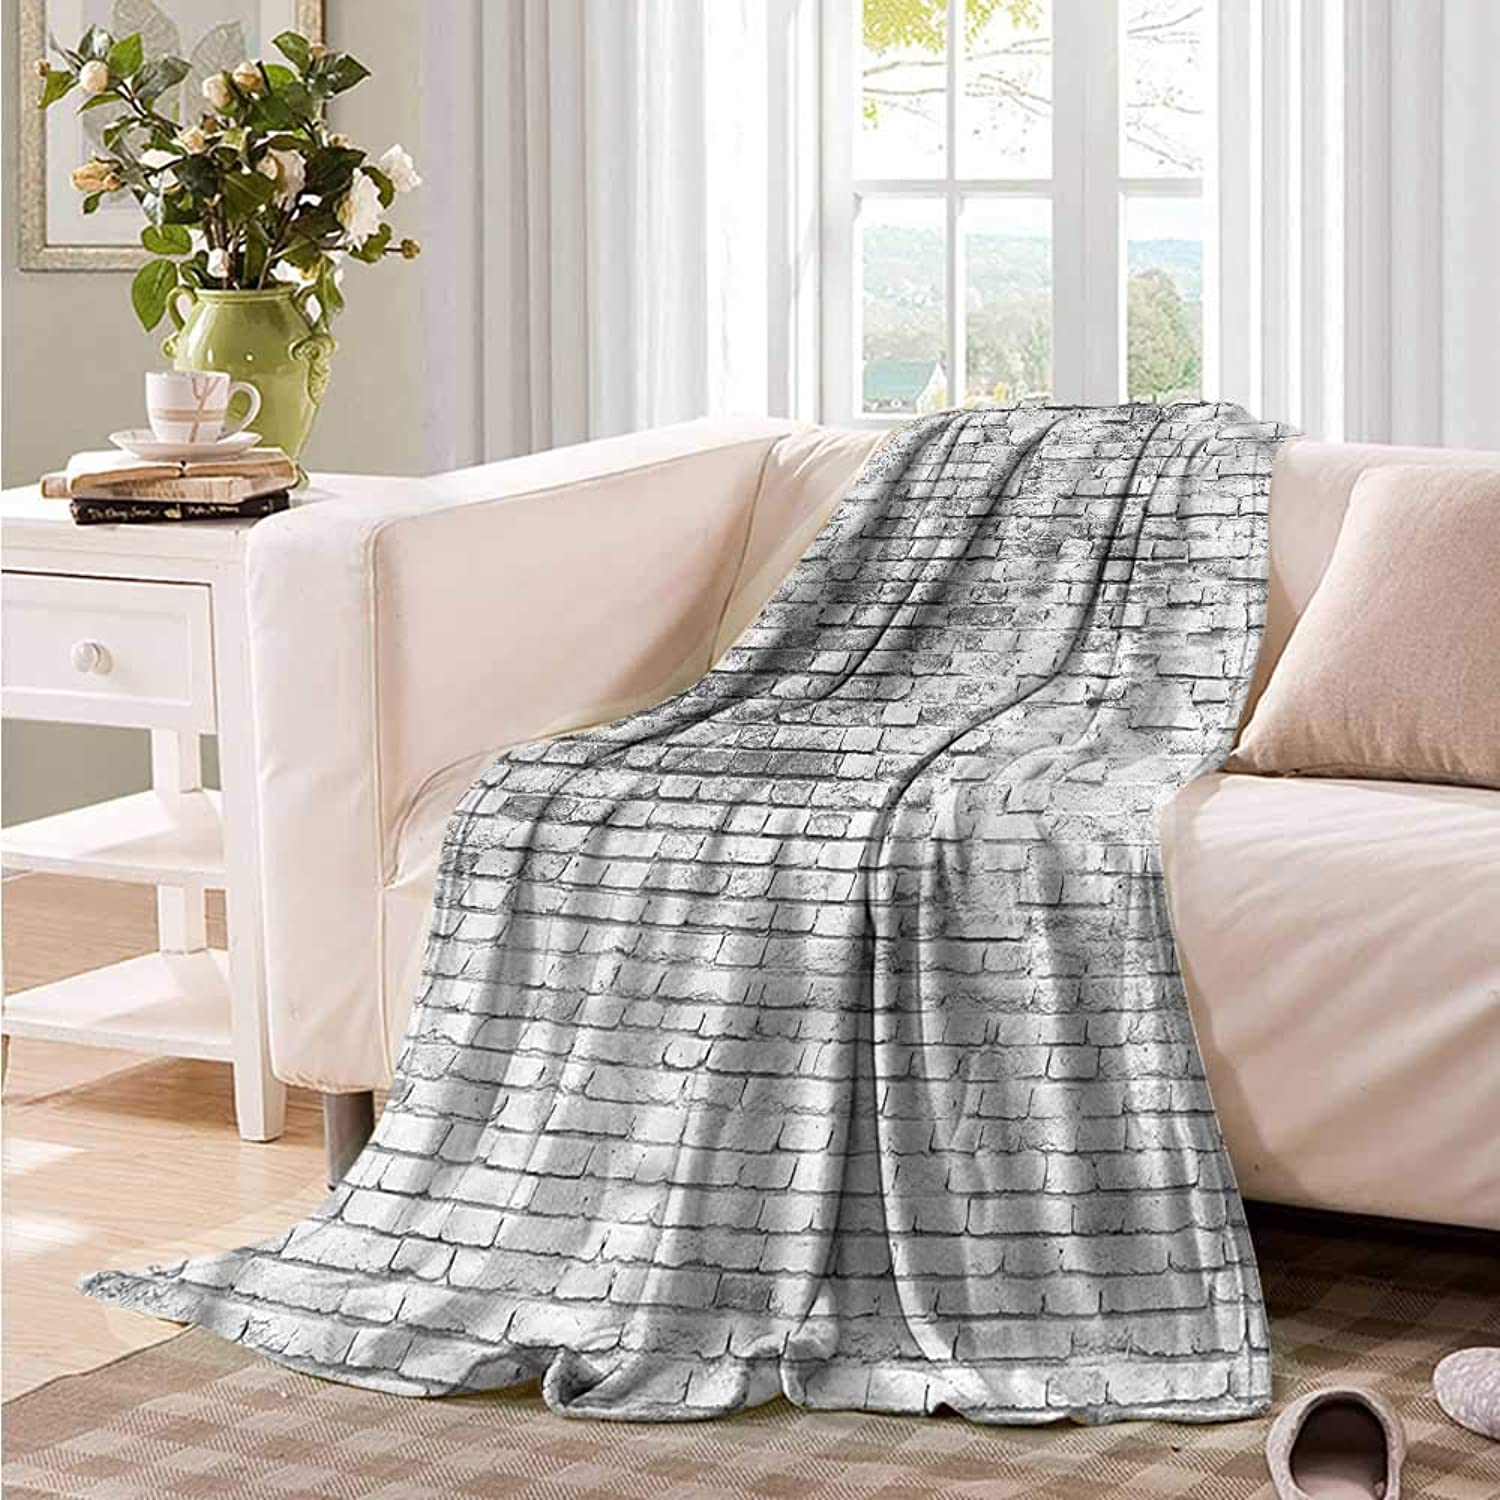 Oncegod Nap Blanket Brick Wall Worn Out Grunge Design Camping Throw,Office wrap 60  W x 51  L